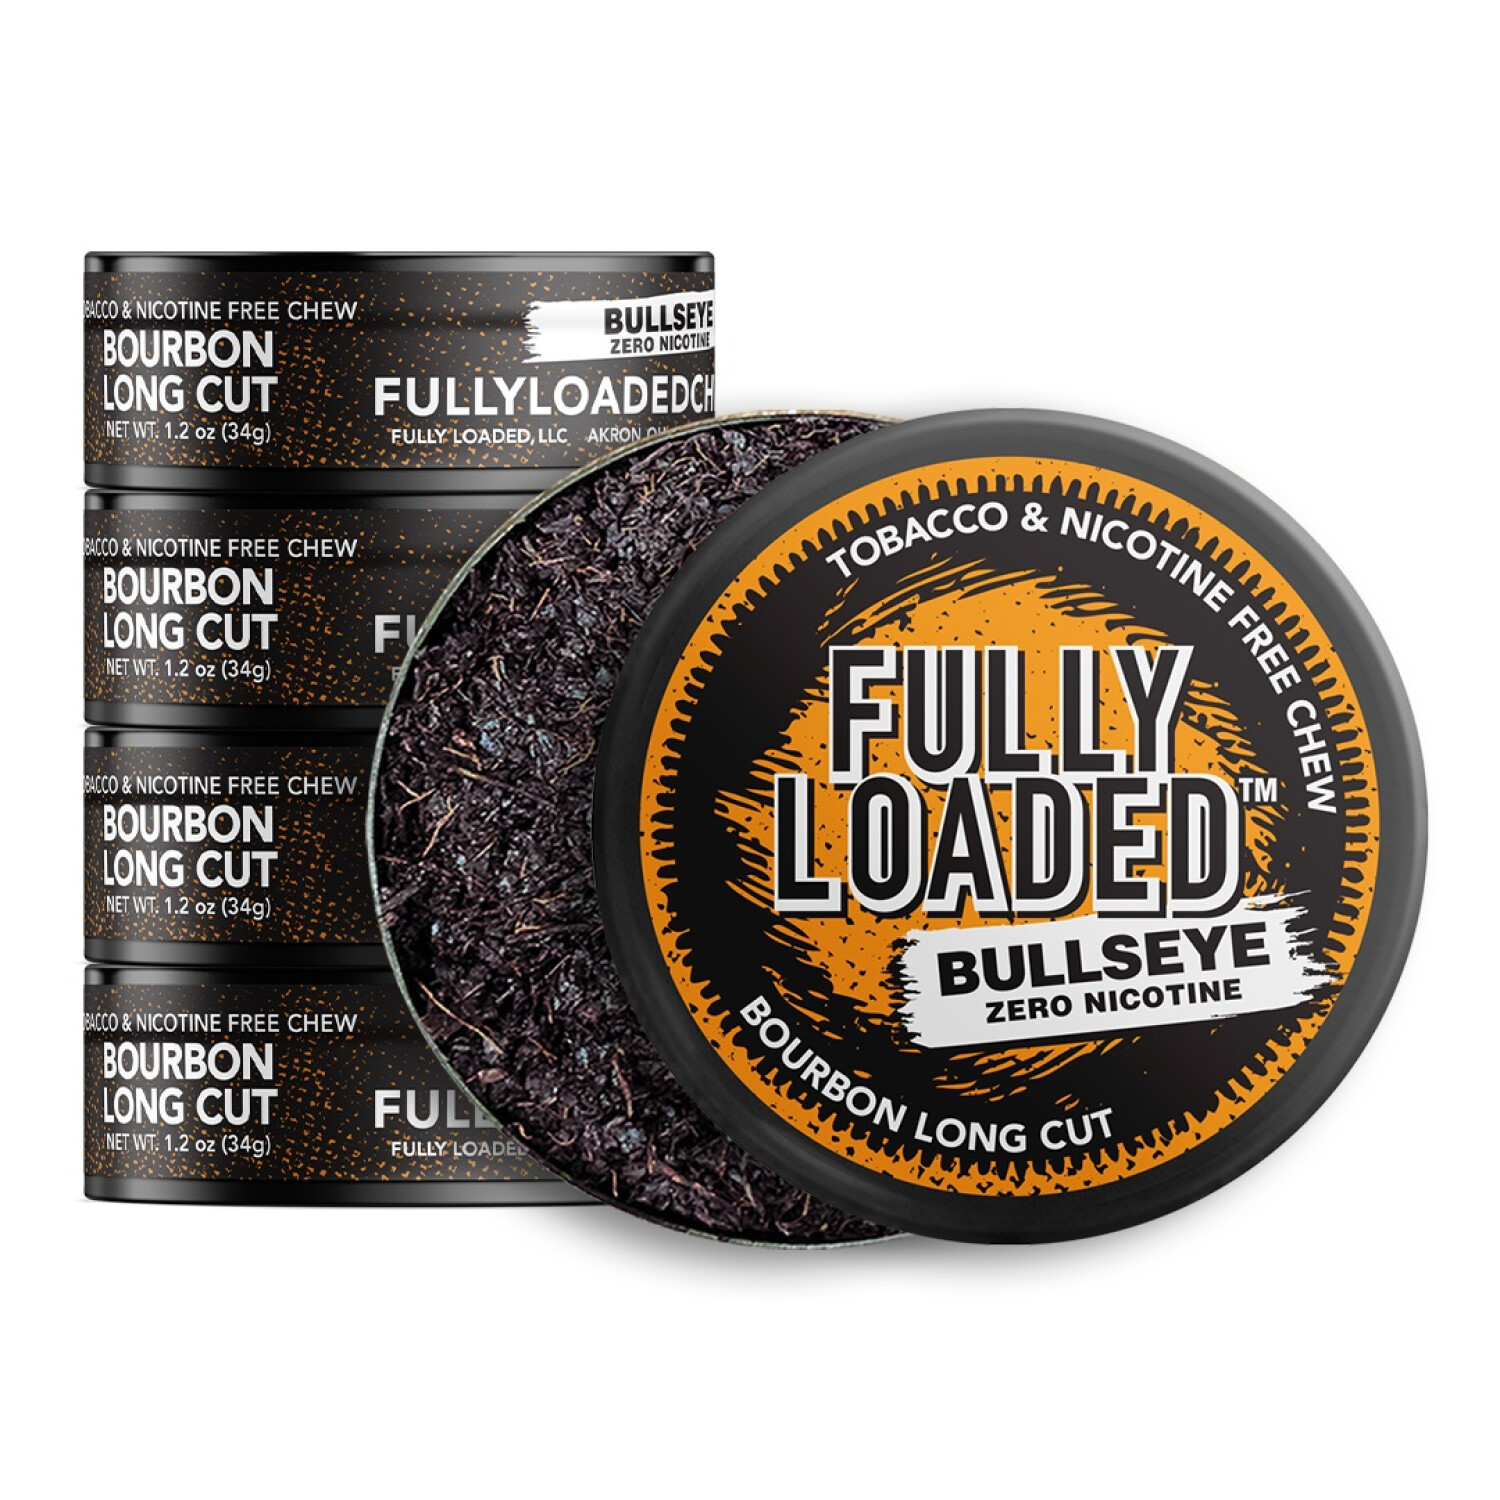 Fully Loaded Chew Tobacco and Nicotine Free Bourbon Bullseye Long Cut Unique Flavor, Chewing Alternative-5 Cans